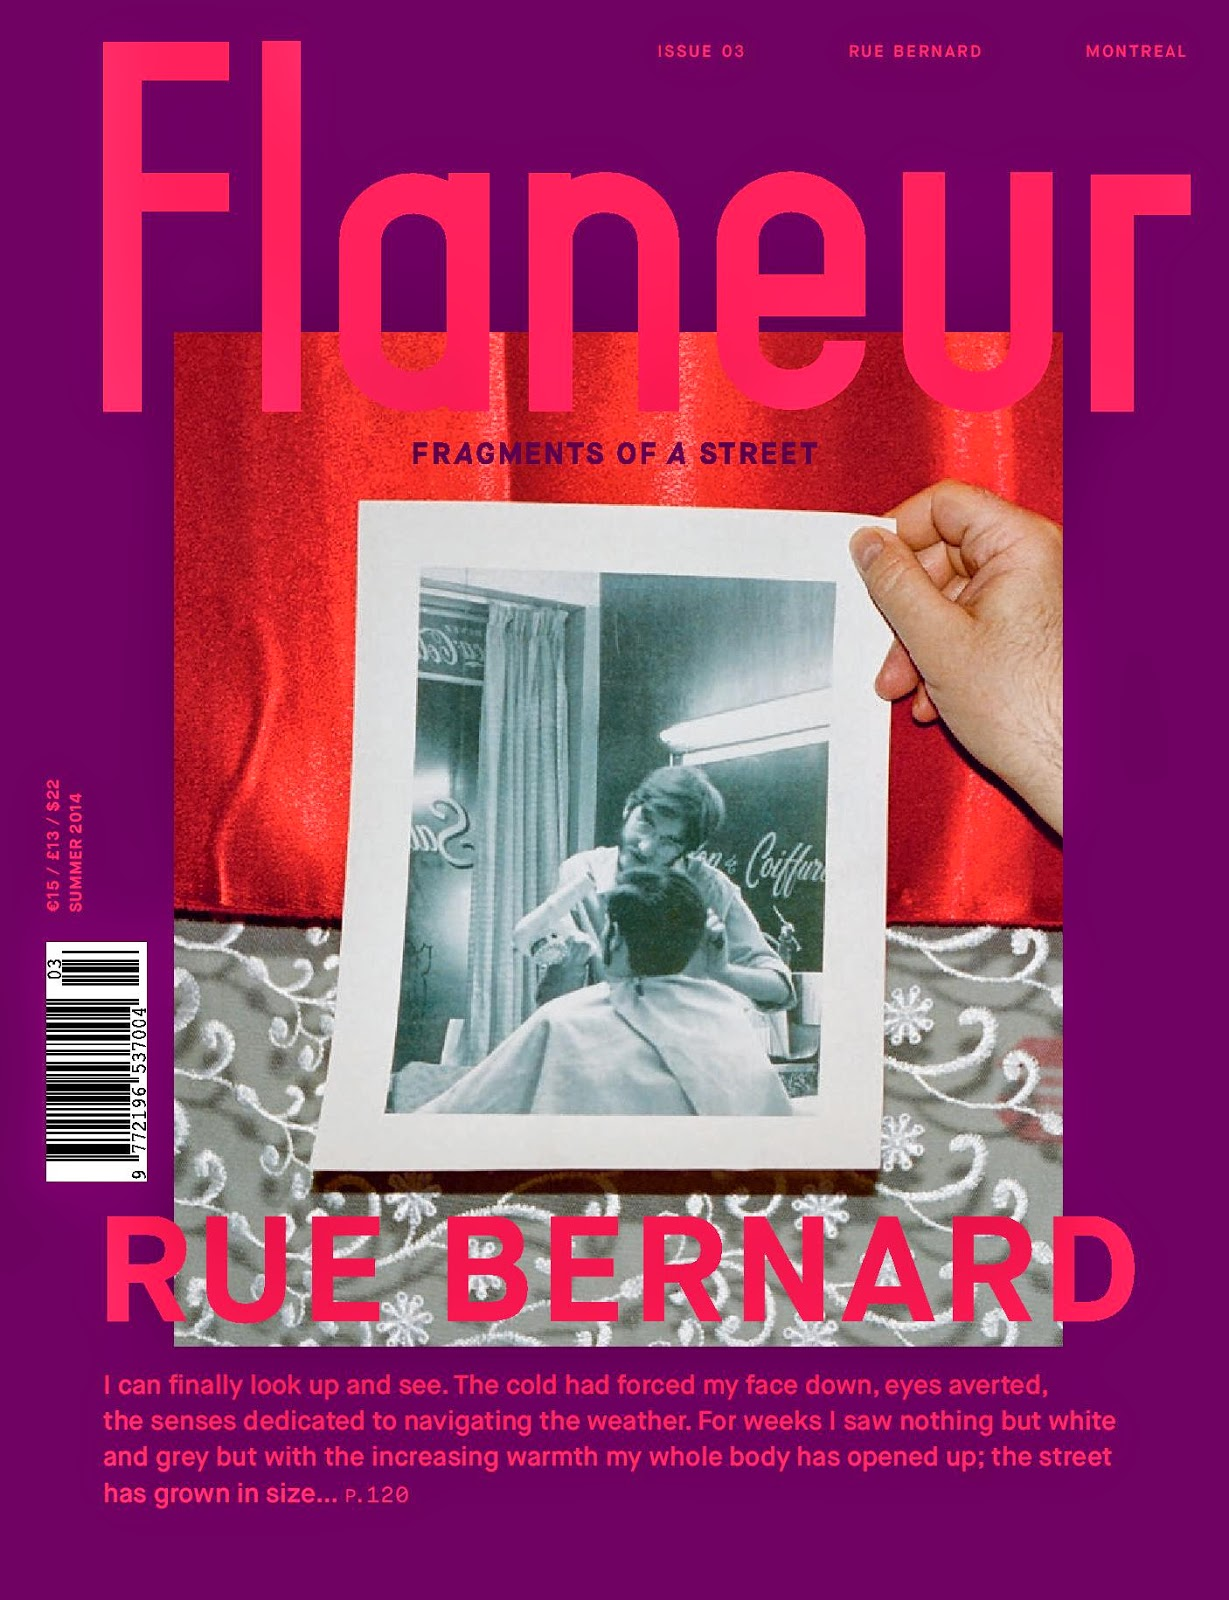 flaneur_issue03_ruebernard_cover+2-page-001